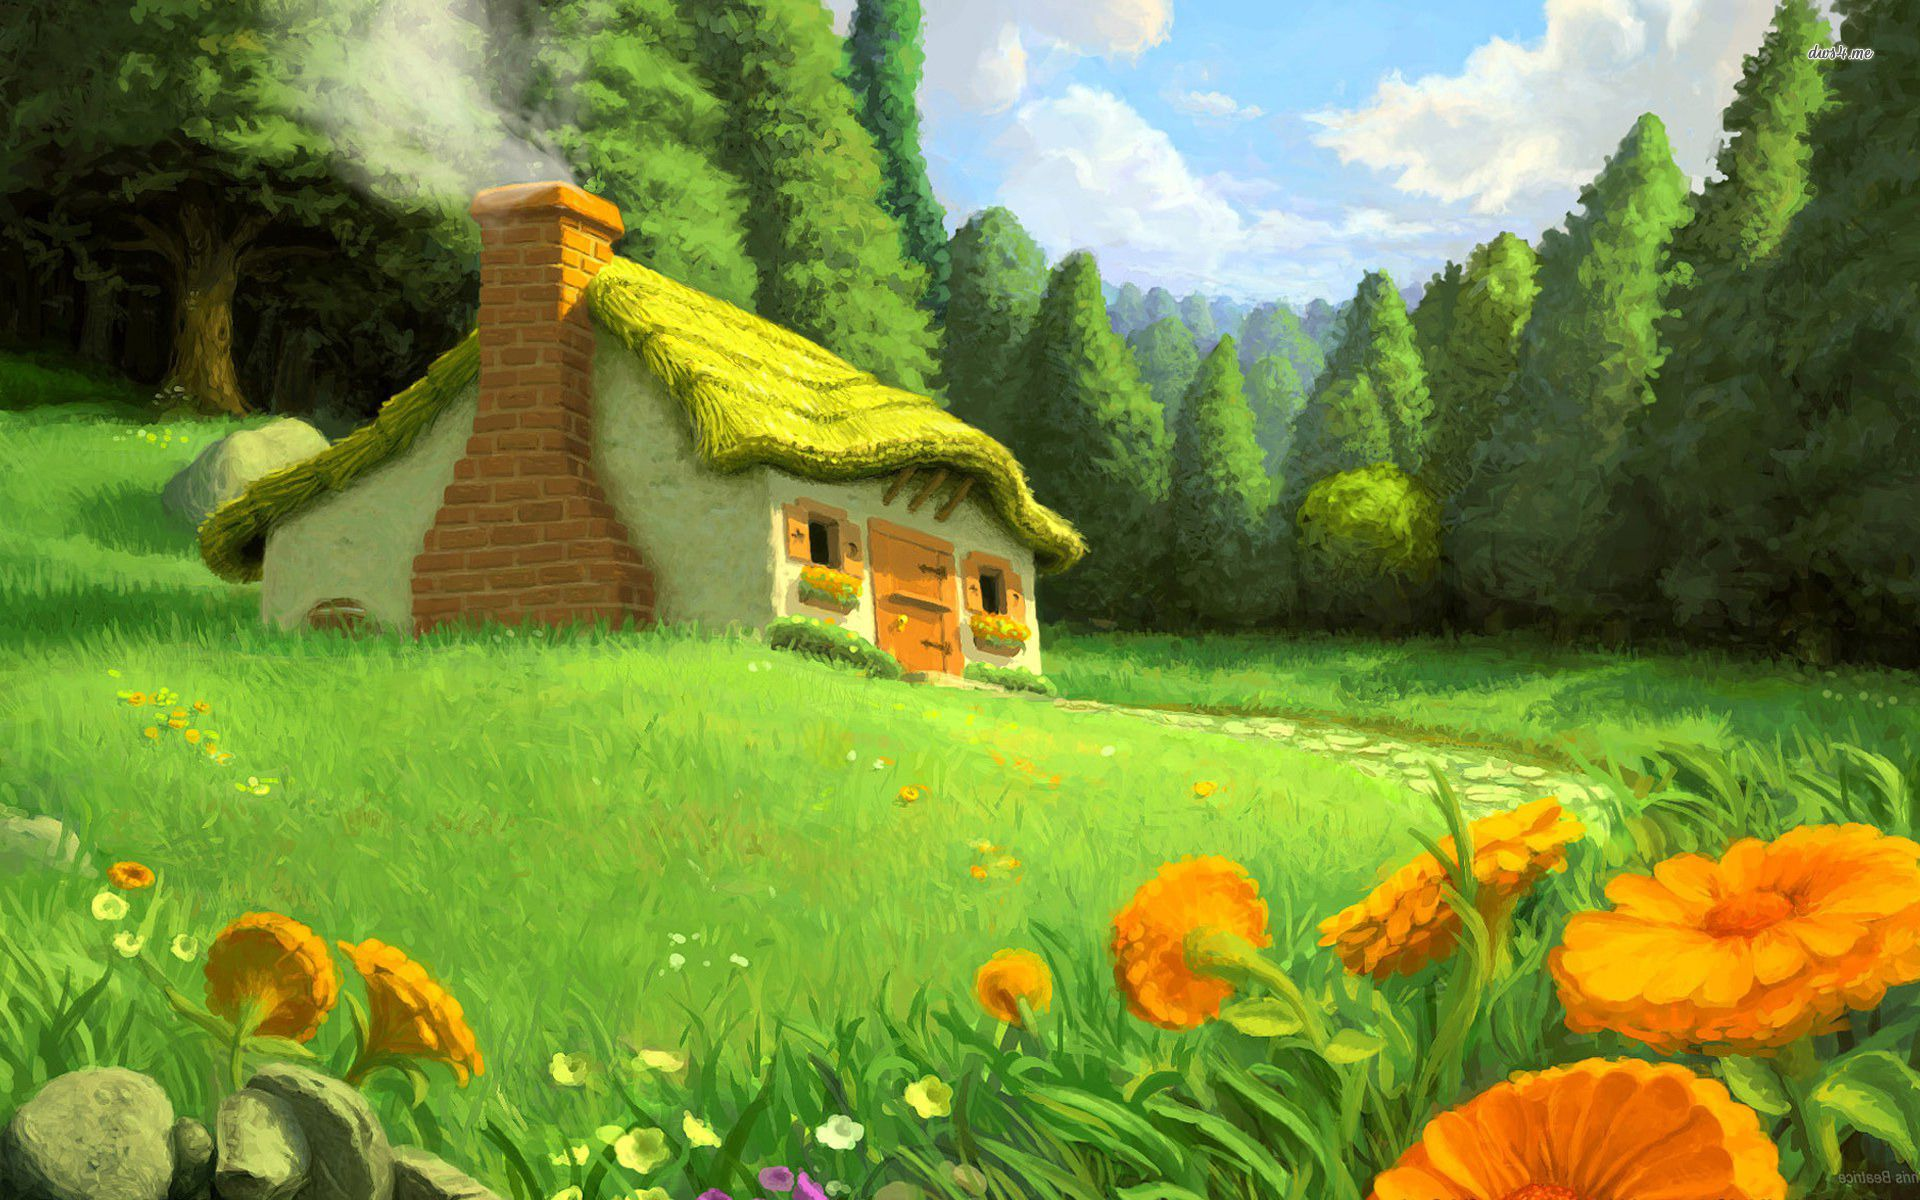 pictures of fairy tail castle - Google Search